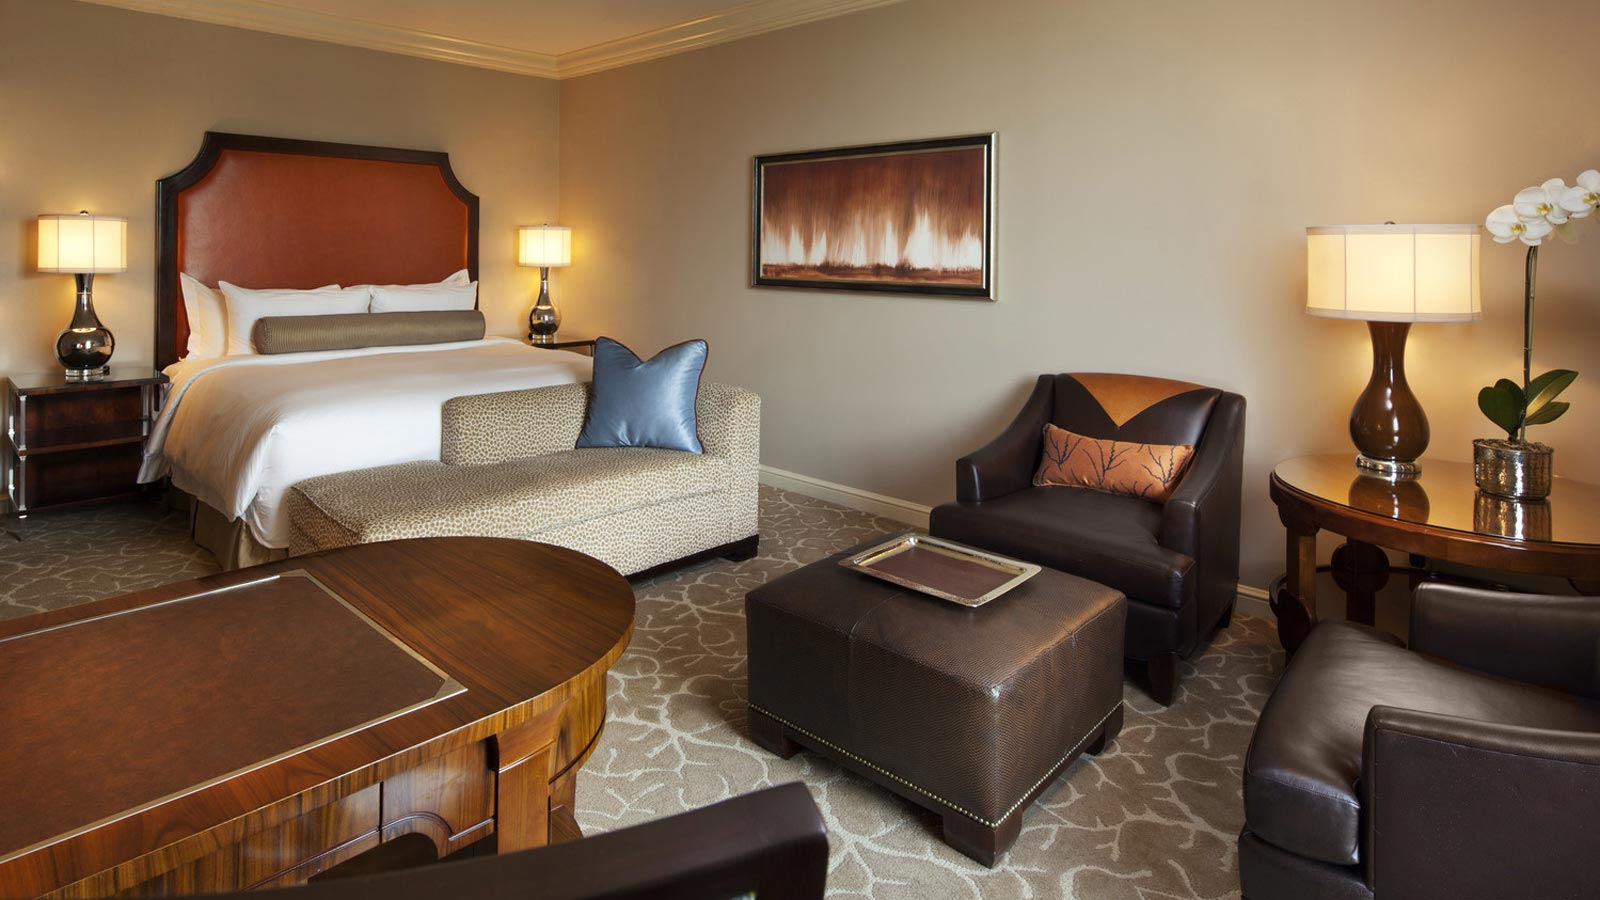 Superior Guest Room - Luxury Hotels in Houston - The St. Regis Houston